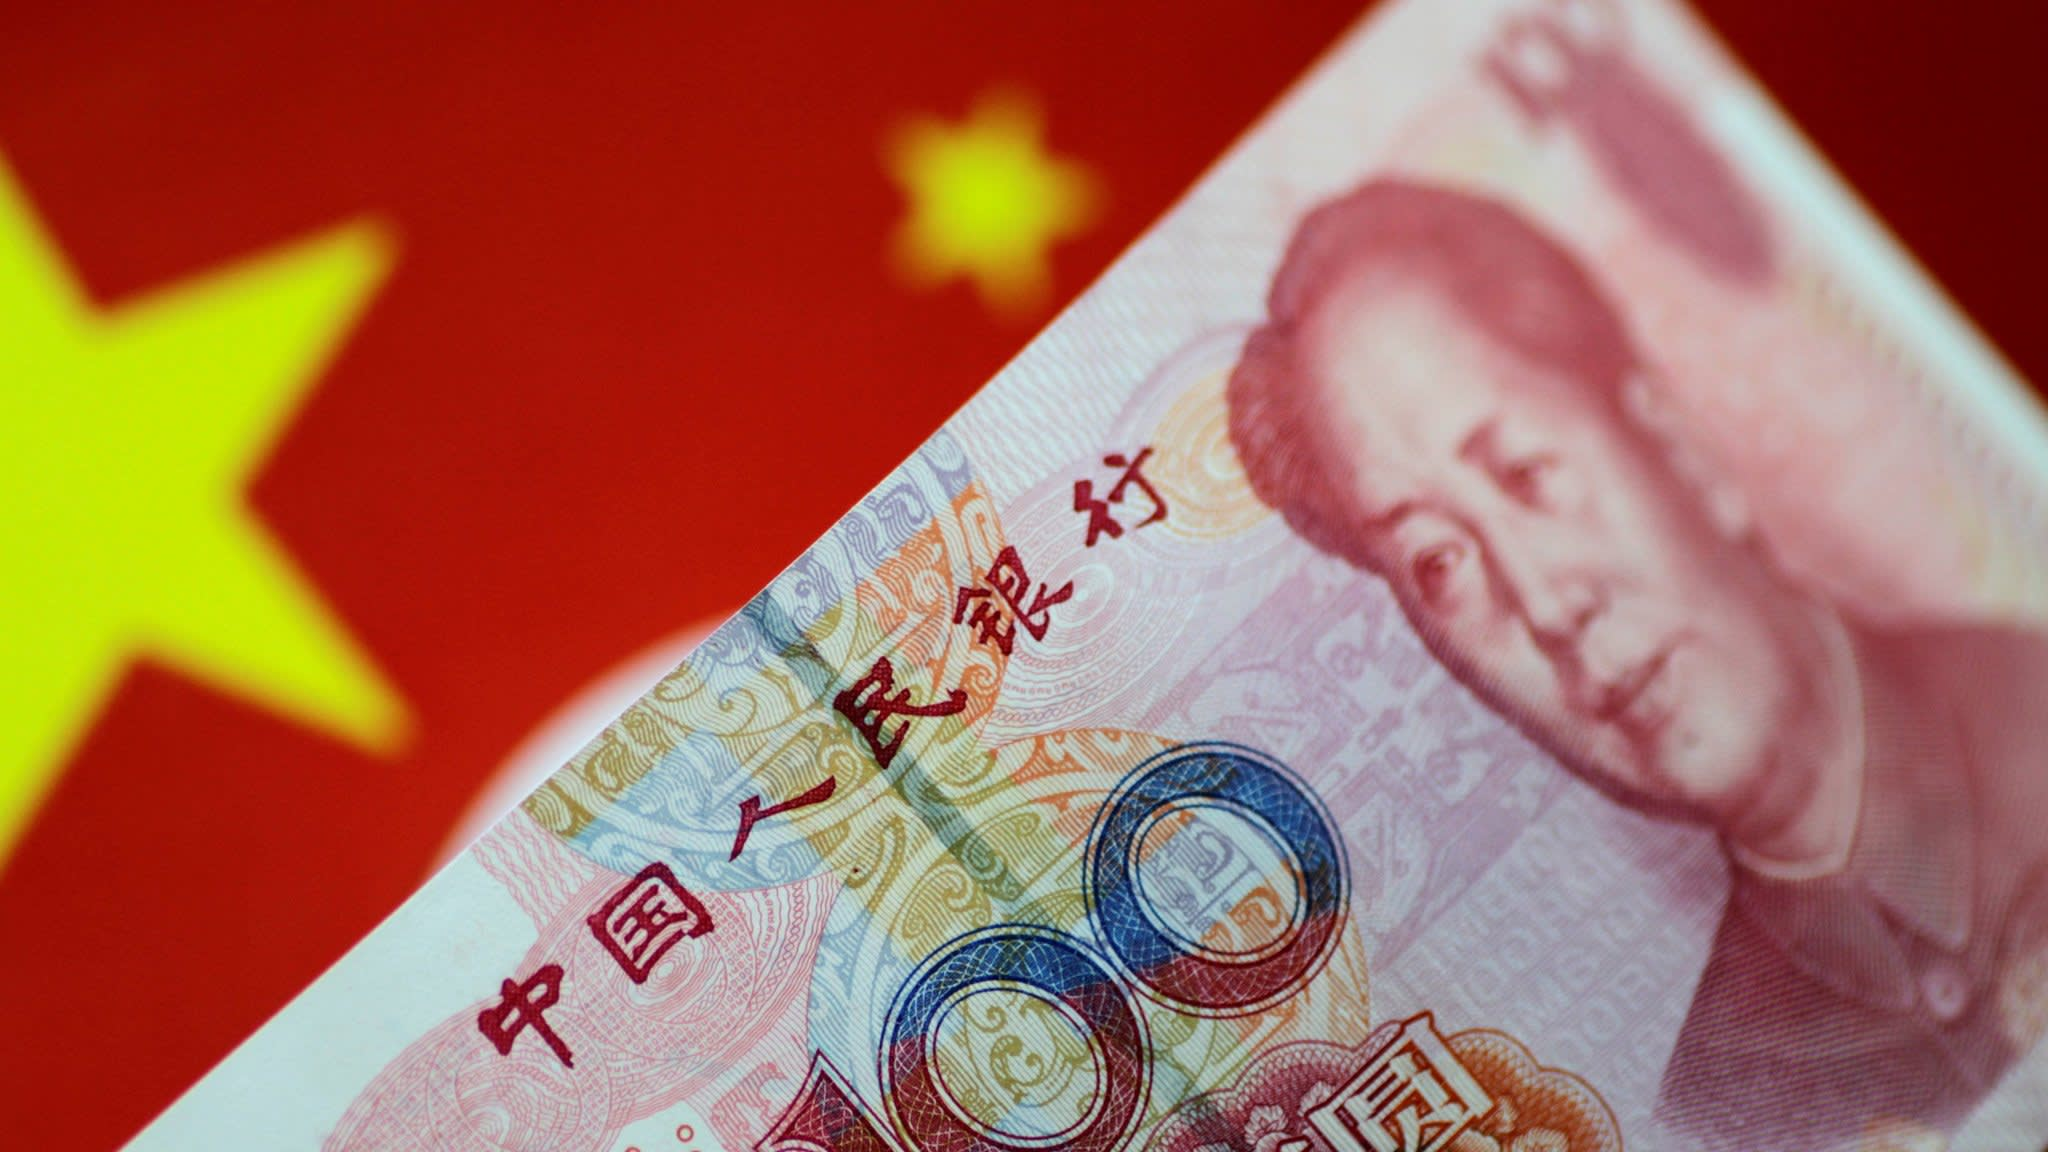 China's $74bn cash injection highlights growth worries